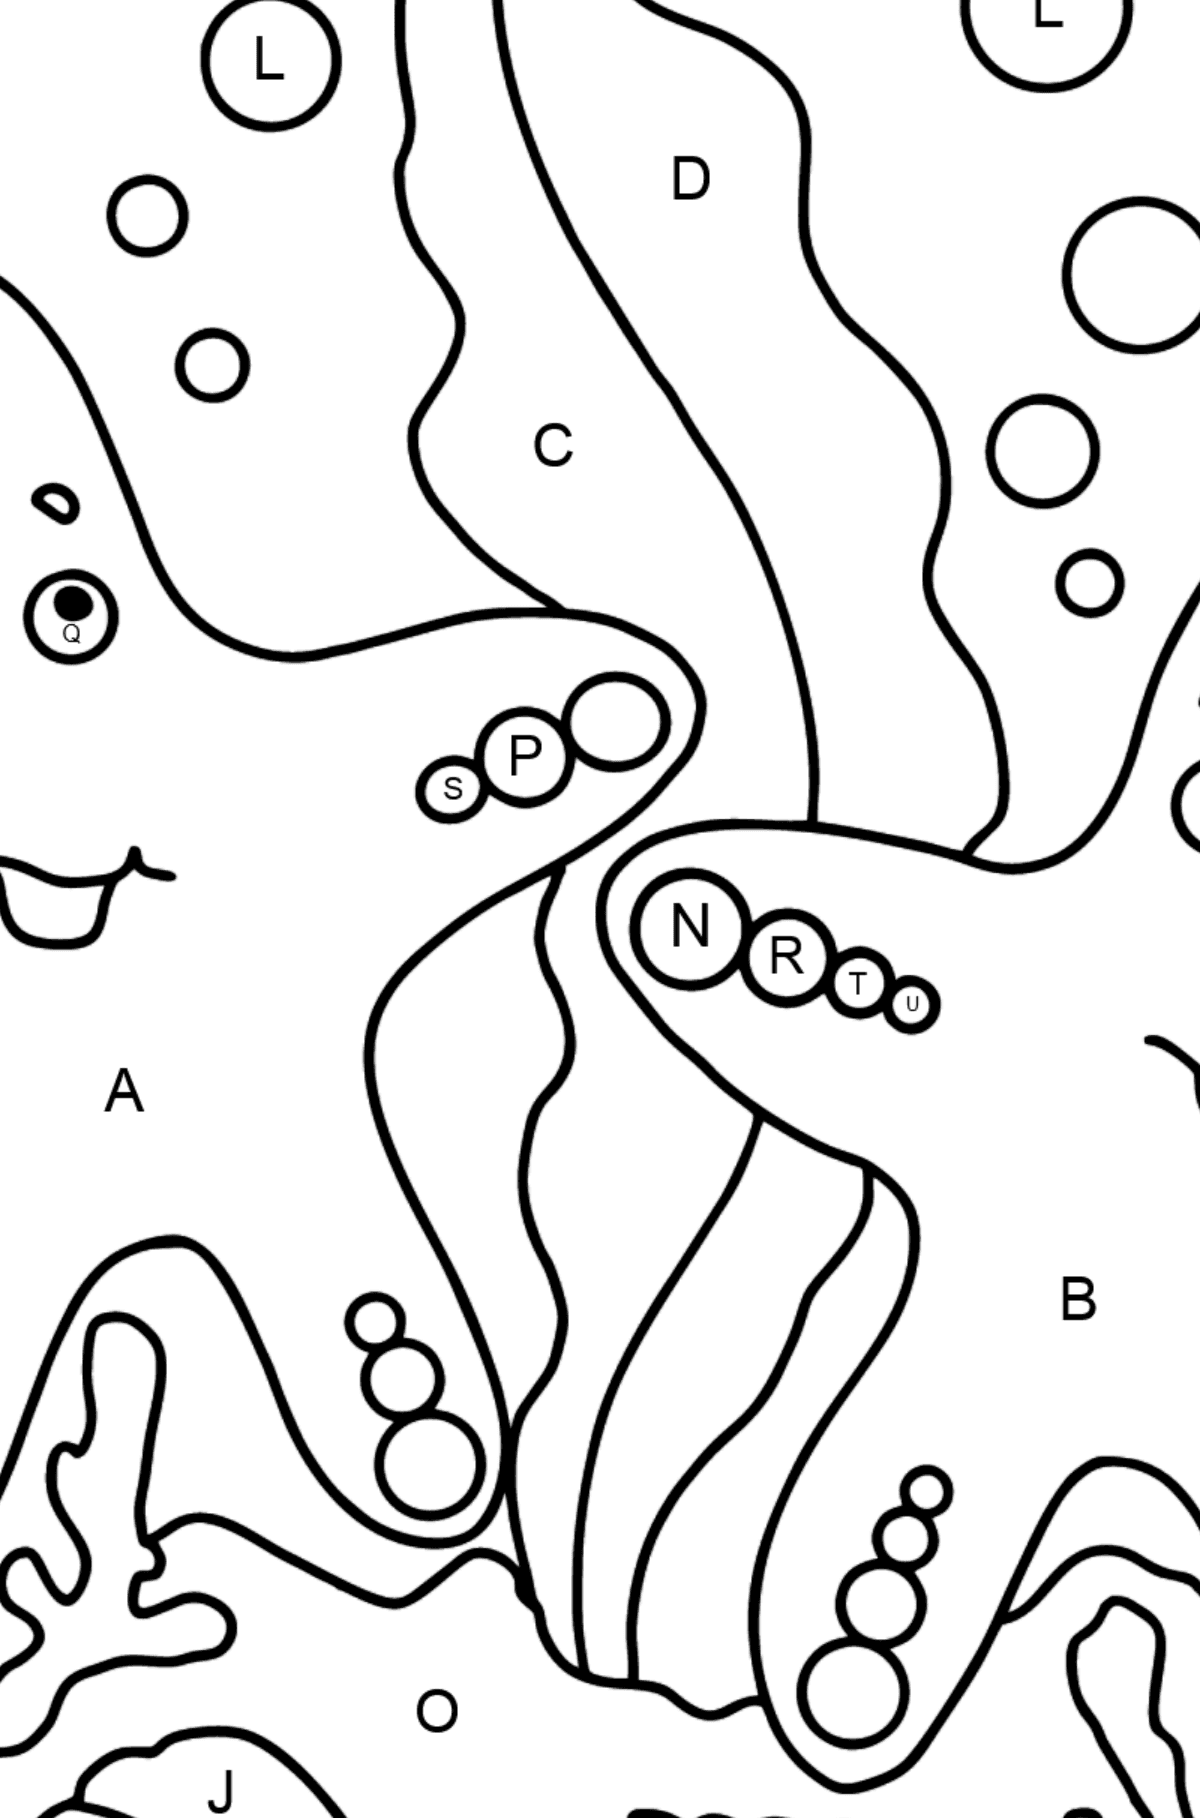 Two Starfish Coloring Page - Coloring by Letters for Kids